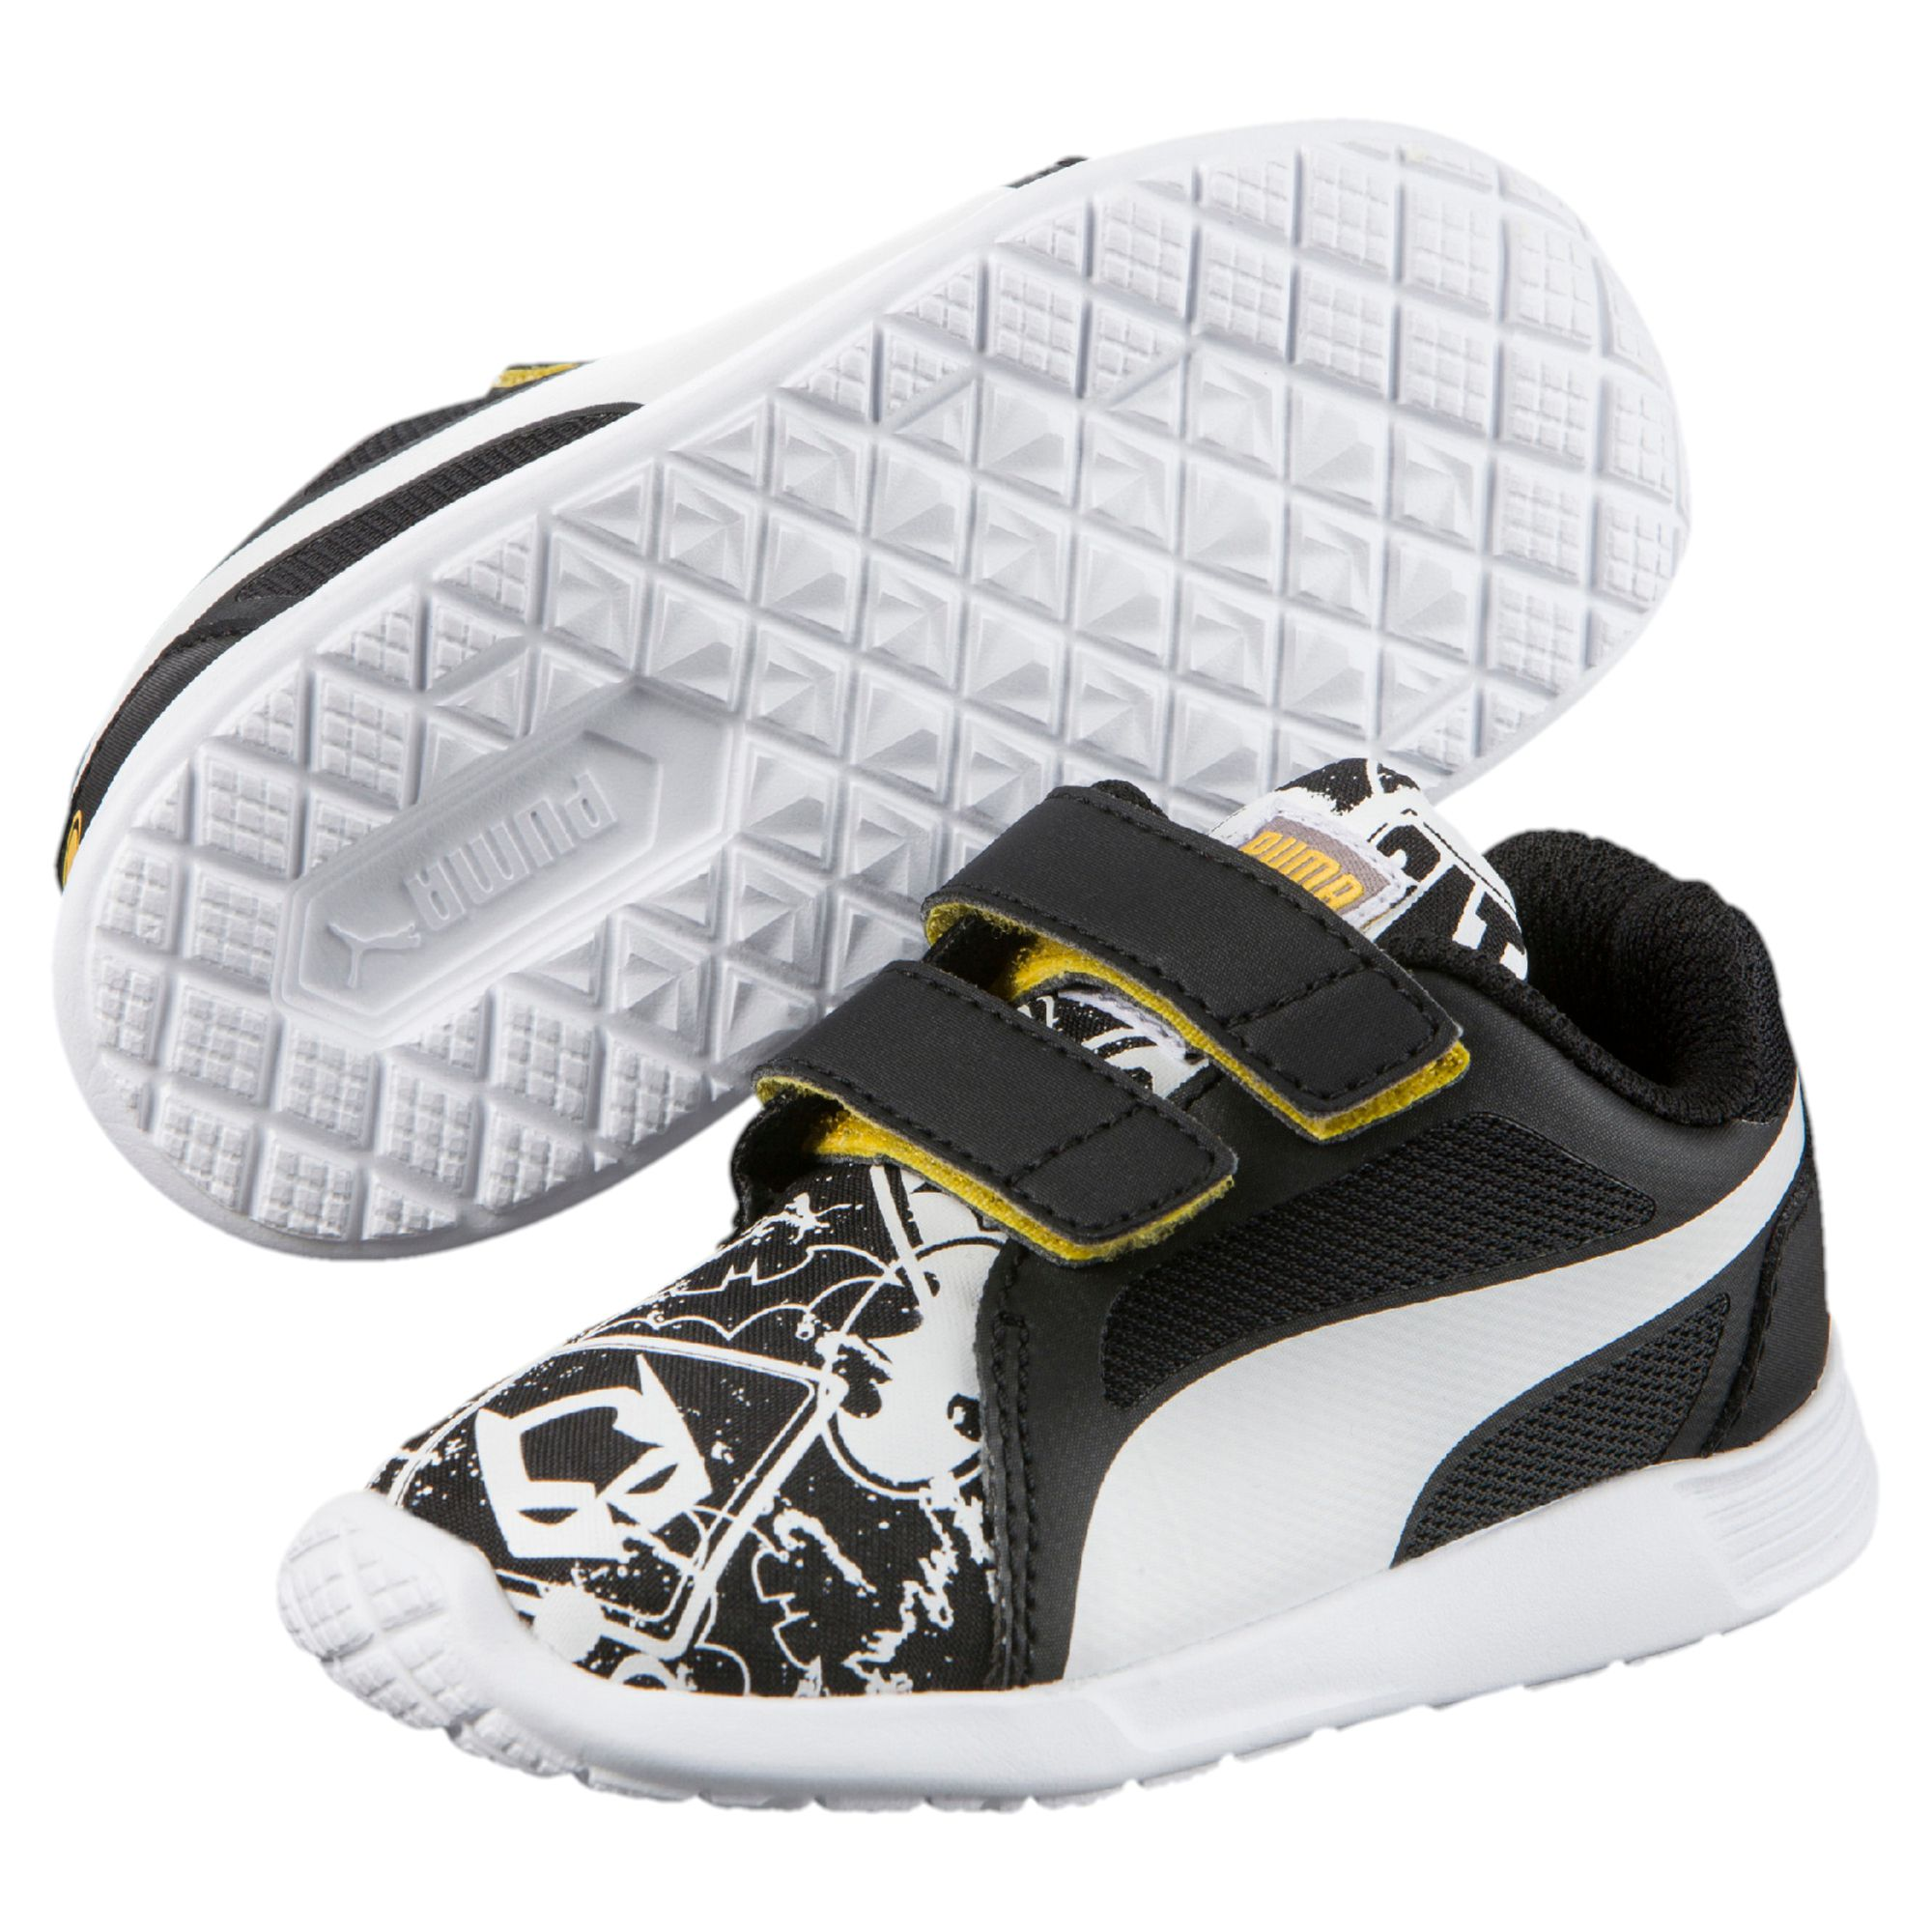 Chaussures Puma Fitness noires unisexe xPuFeO